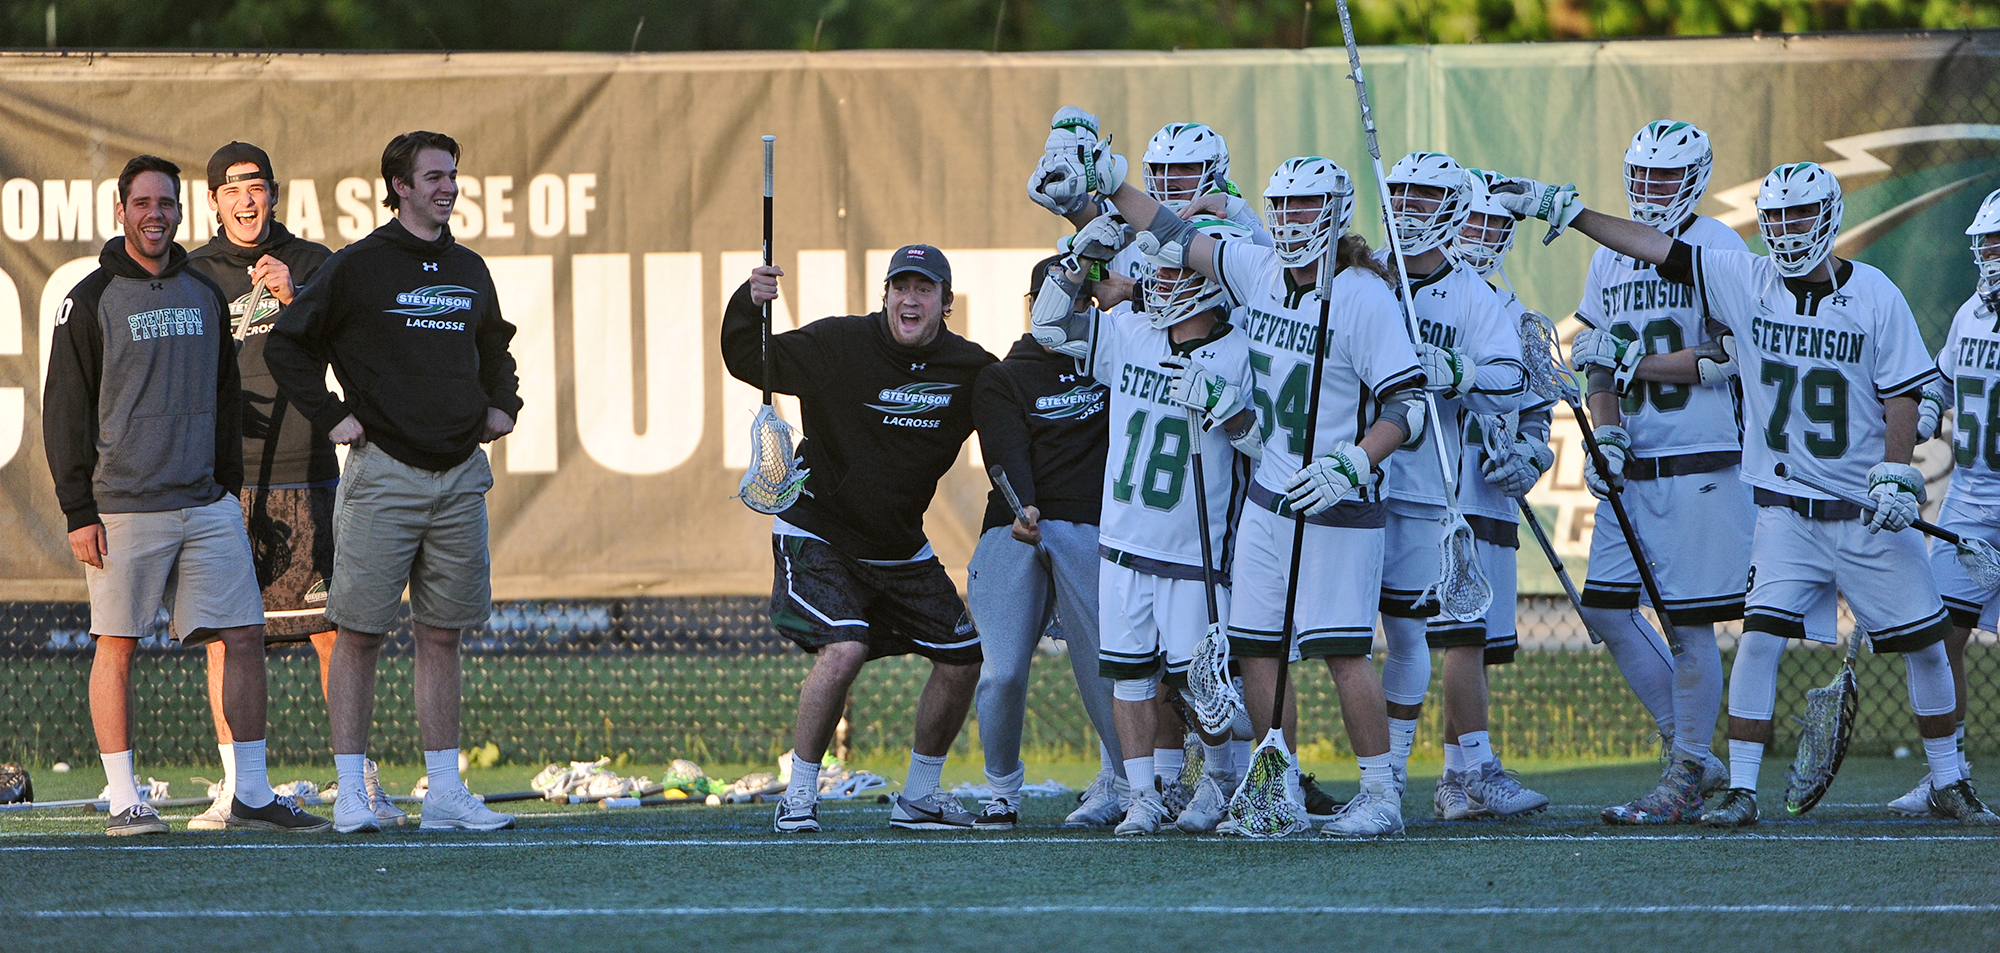 Men's Lacrosse Faces Off With Albright for Conference Title Saturday